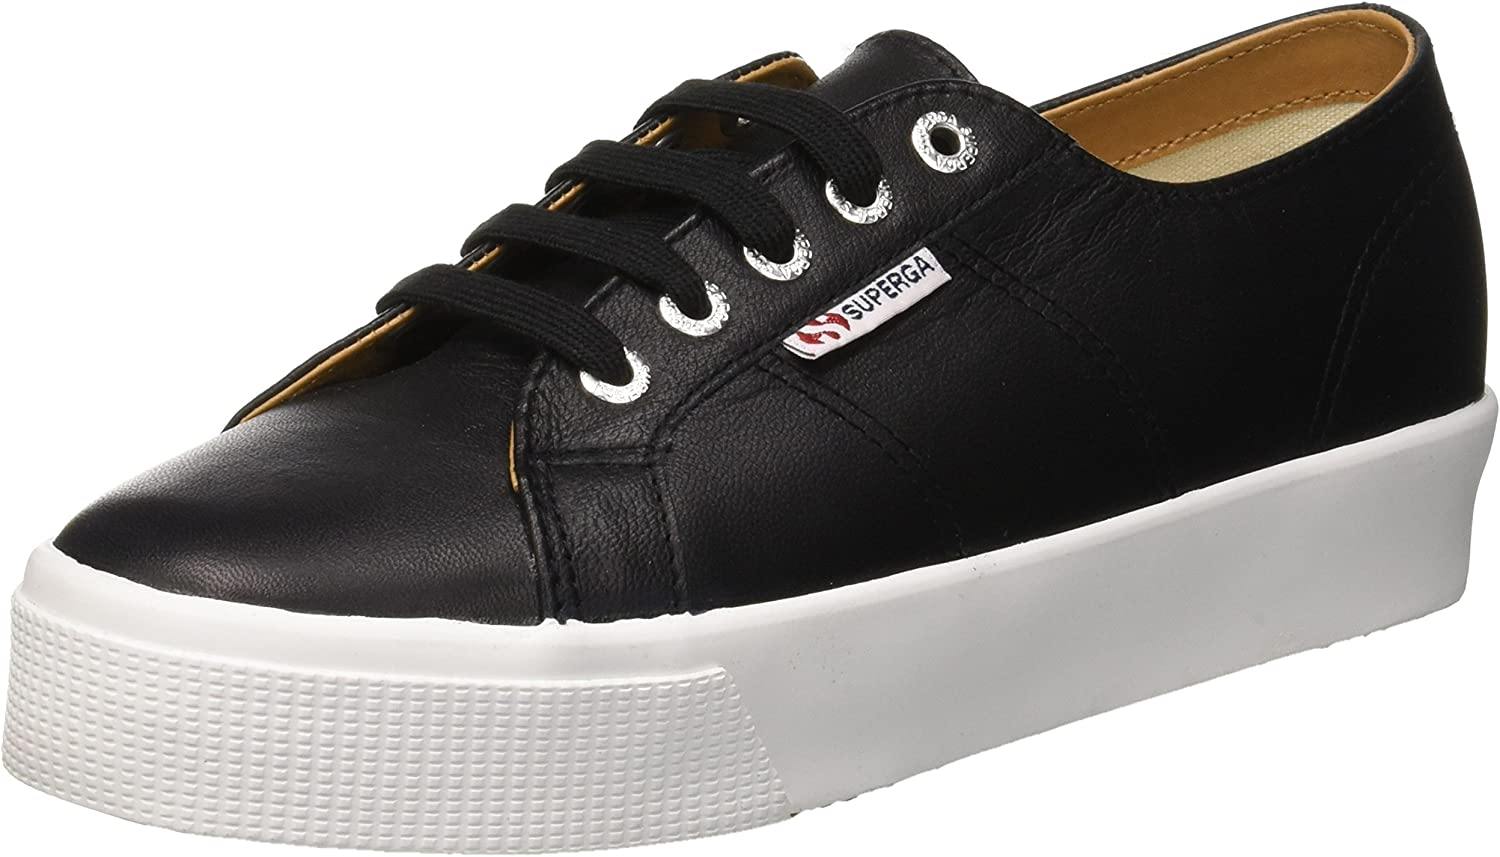 Superga Unisex Adults' 2730 Nappaleau Trainers